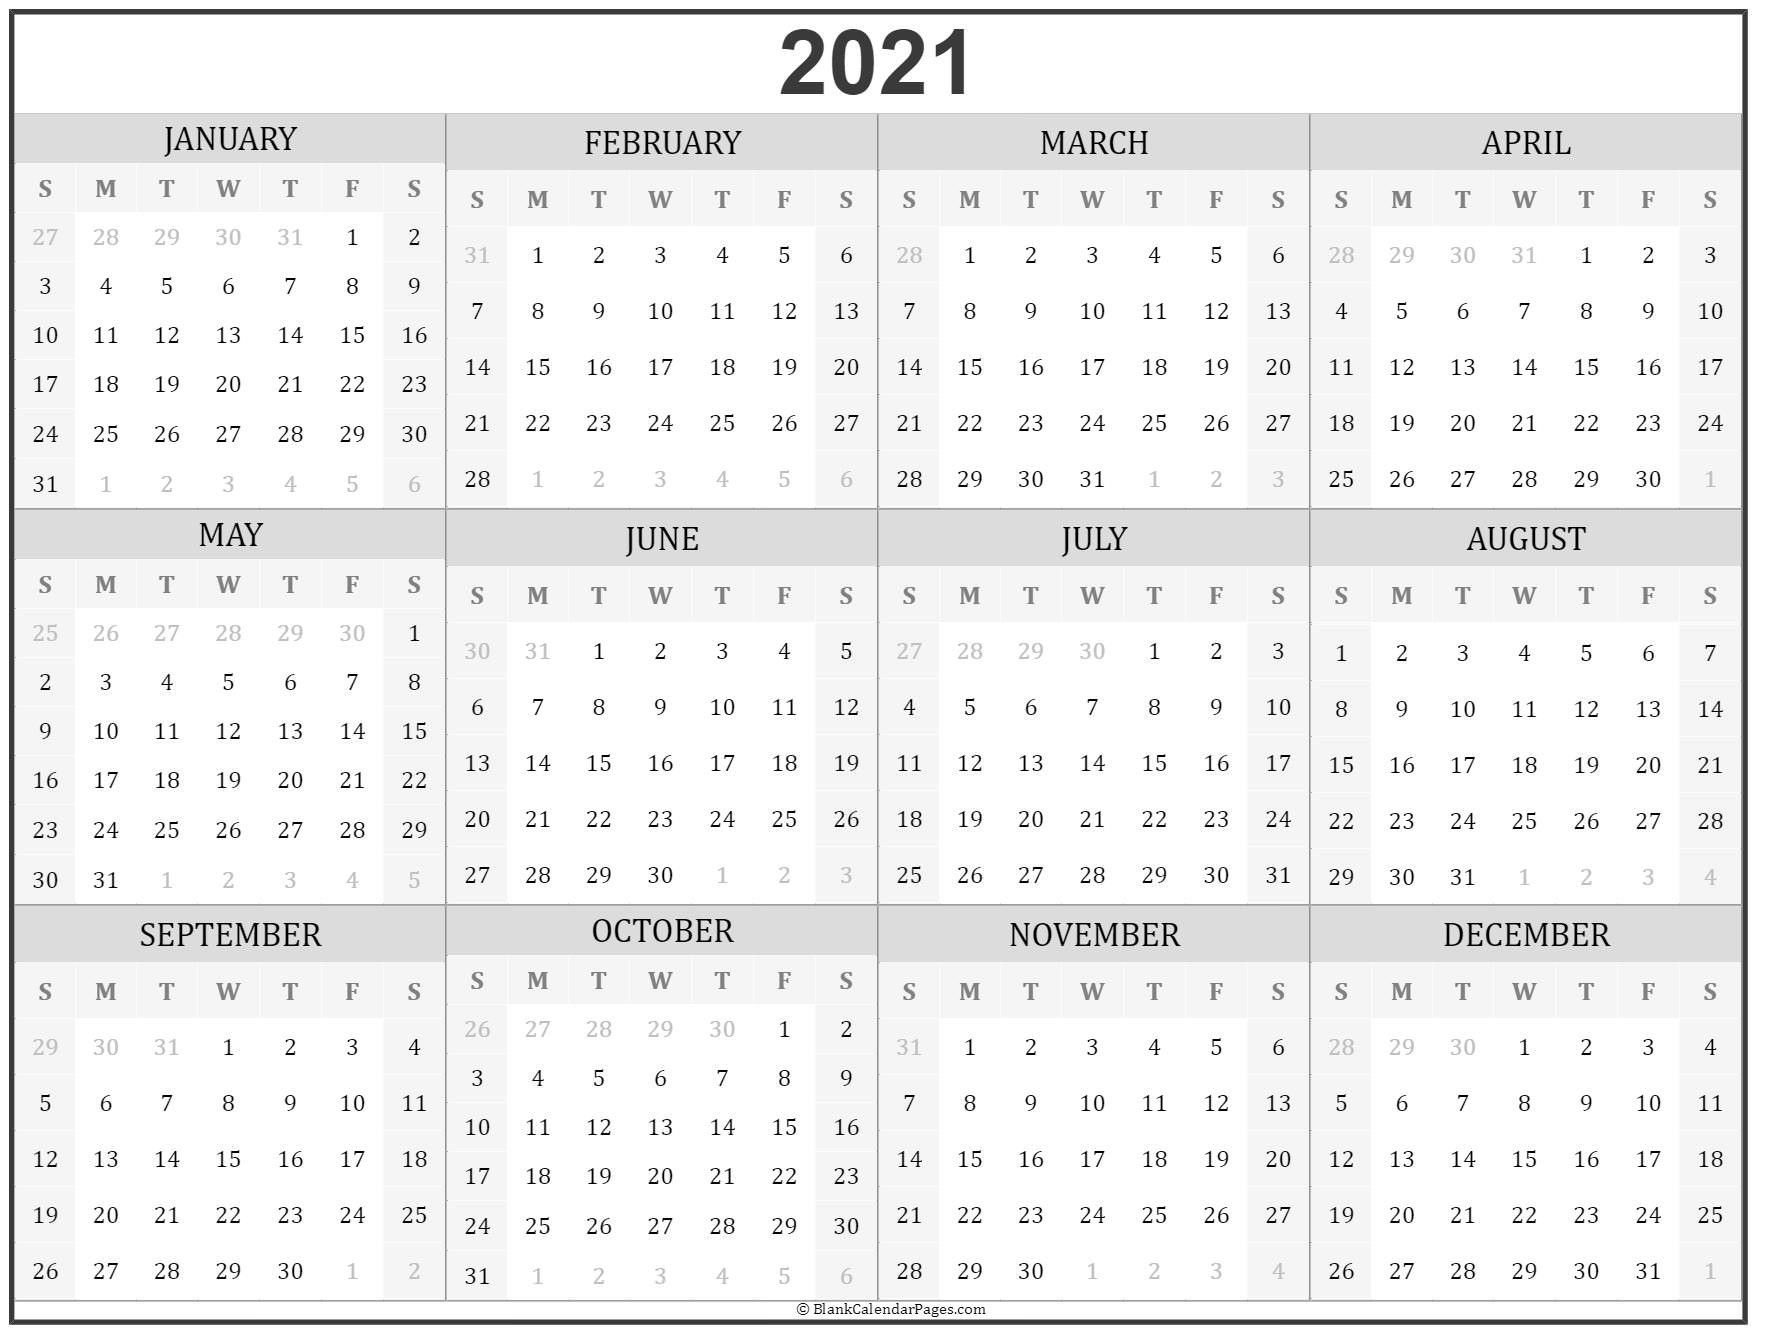 2021 Yearly Calendar Template Printable Welcome For You To Our Blog Within This Period I L In 2020 Yearly Calendar Template Printable Calendar Design Print Calendar